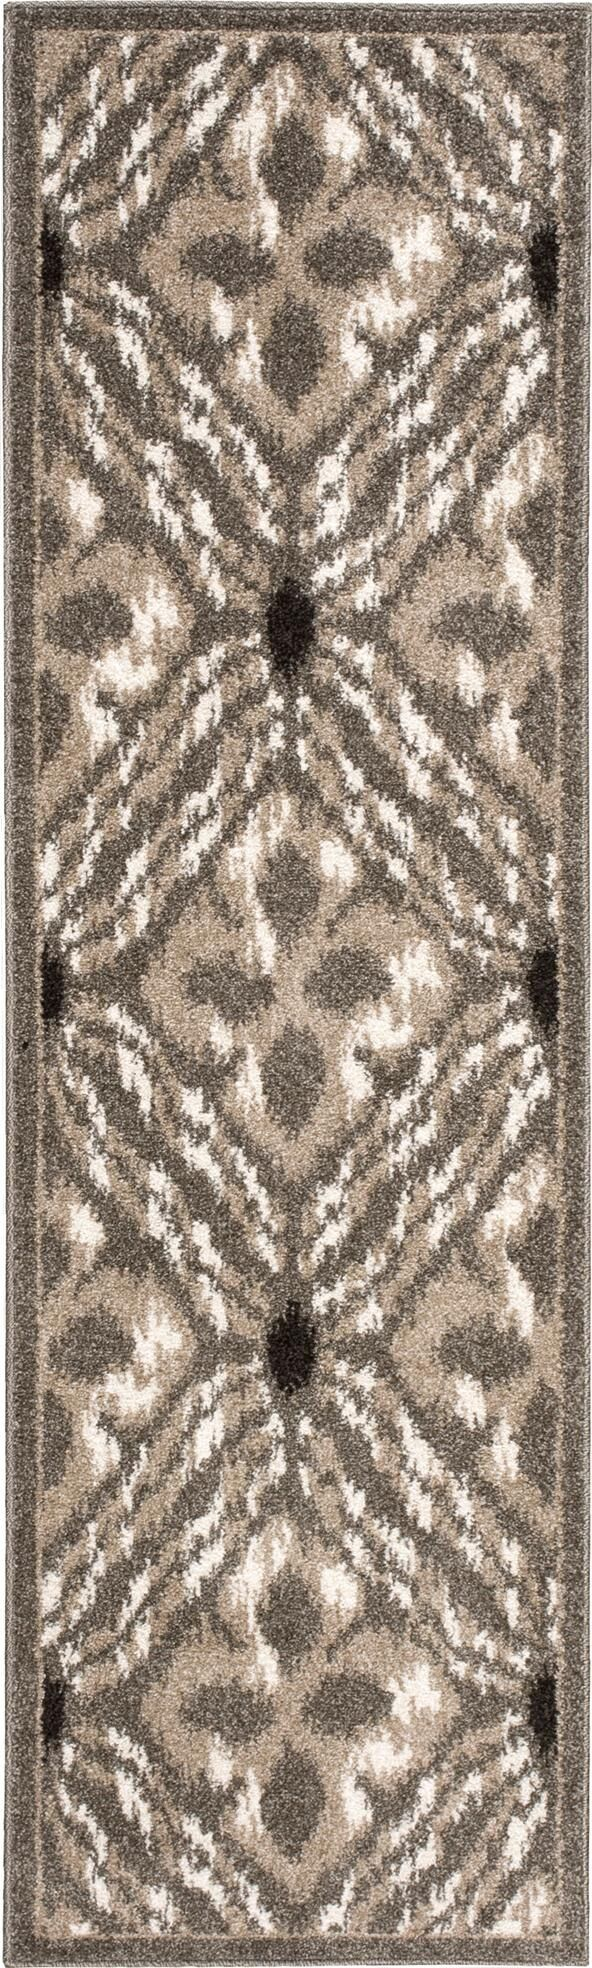 Horsham Brown Area Rug Rug Size: Runner 2'2